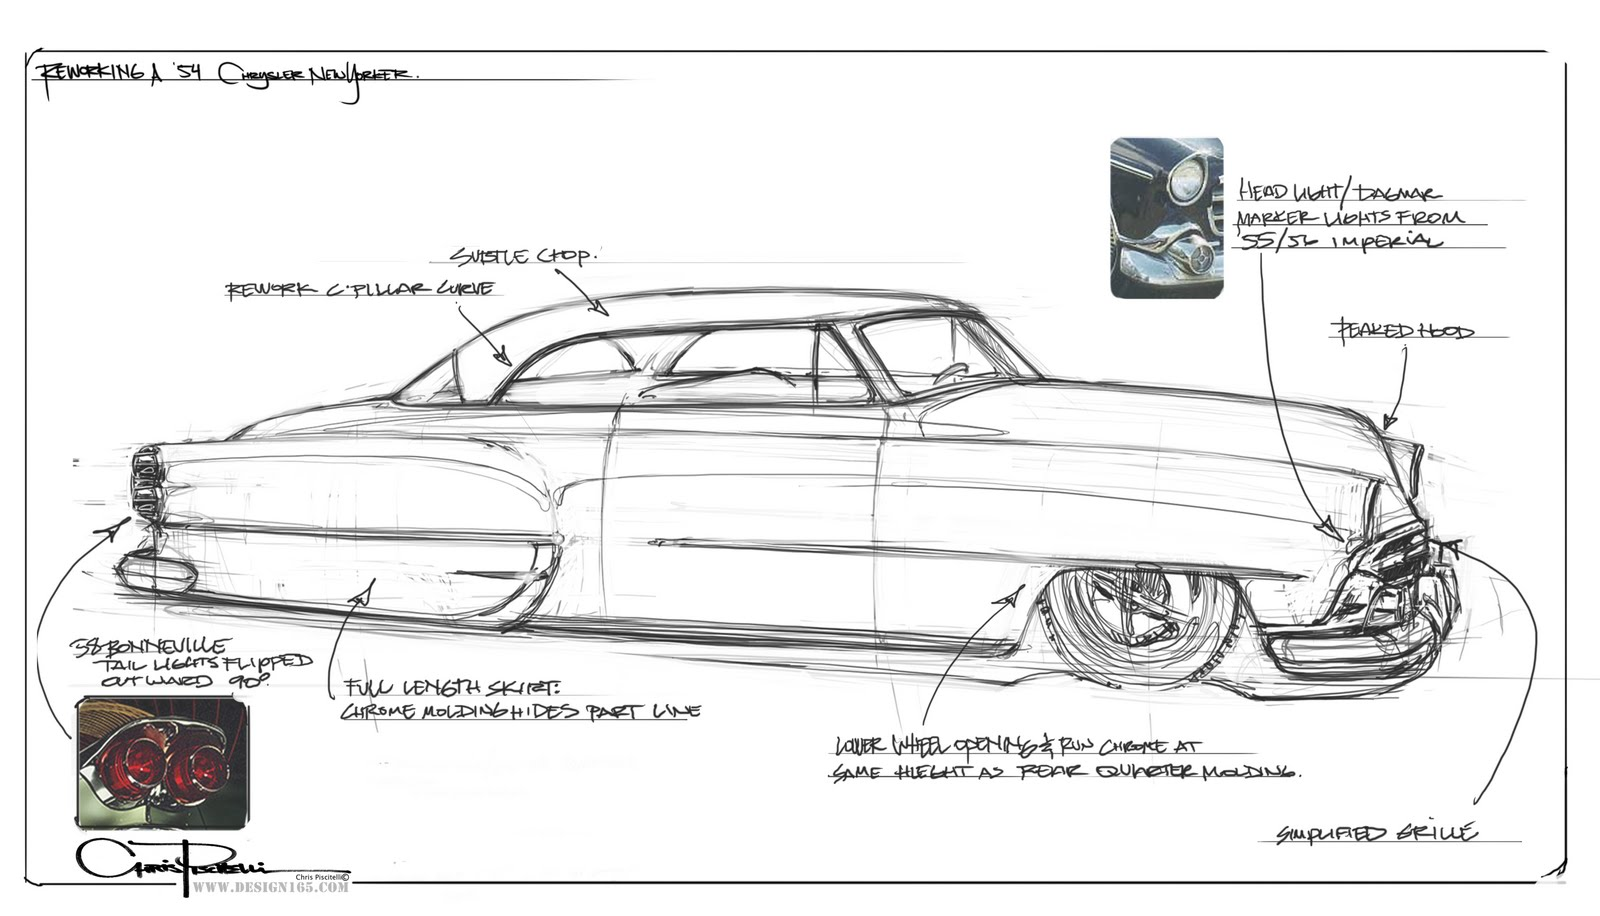 Design165 Thoughts On A 54 Chrysler